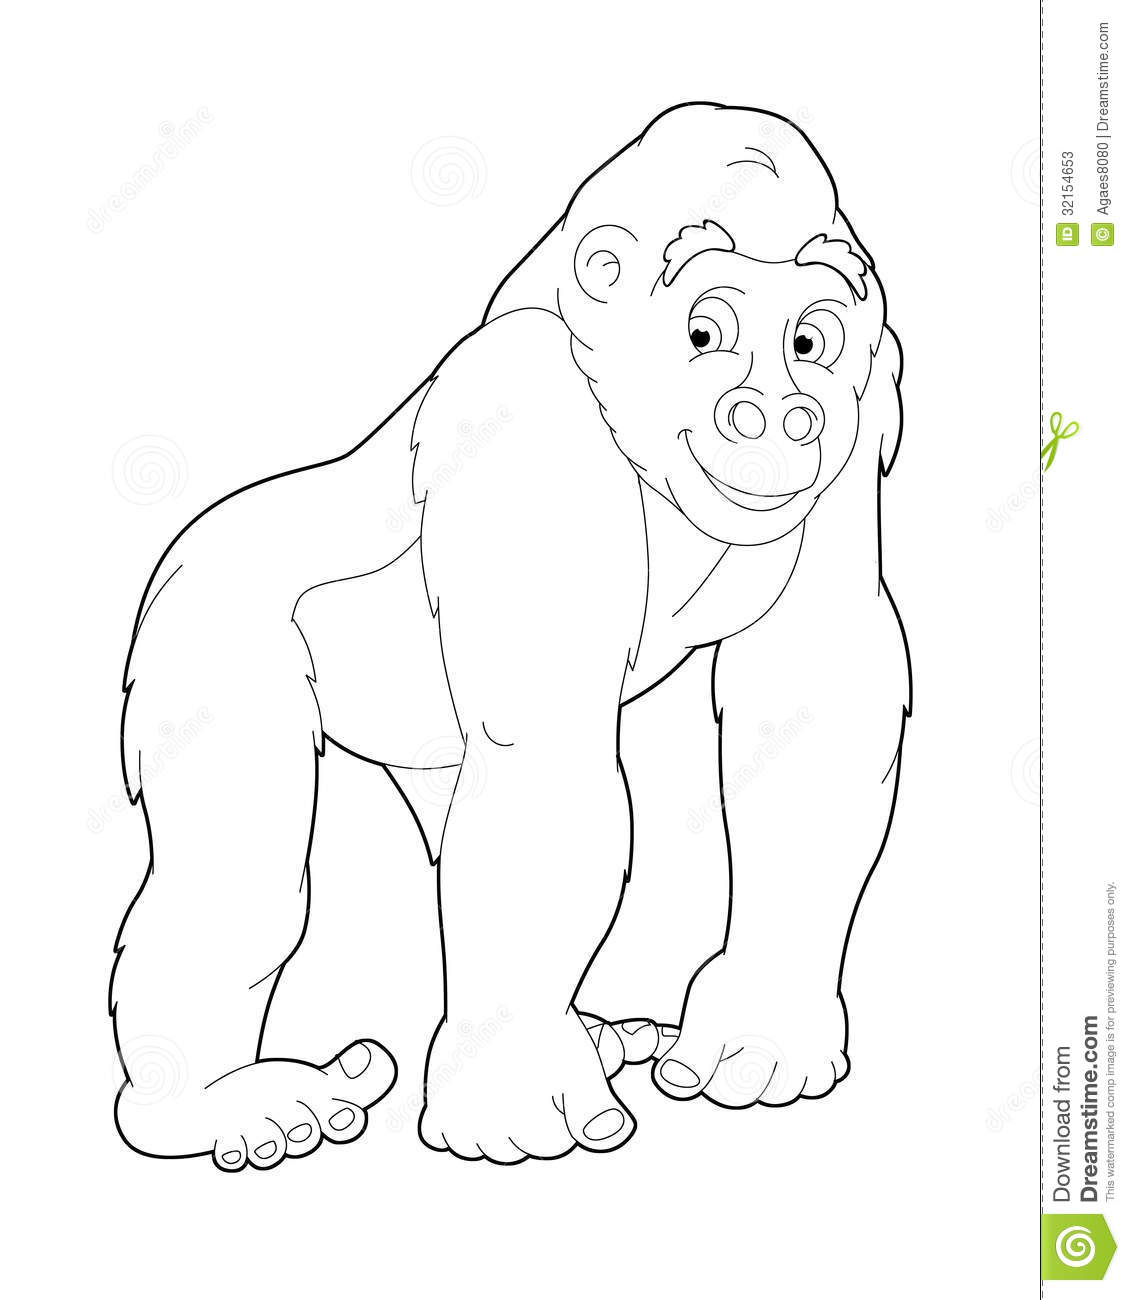 Safari Animals Coloring Pages: Illustration For The